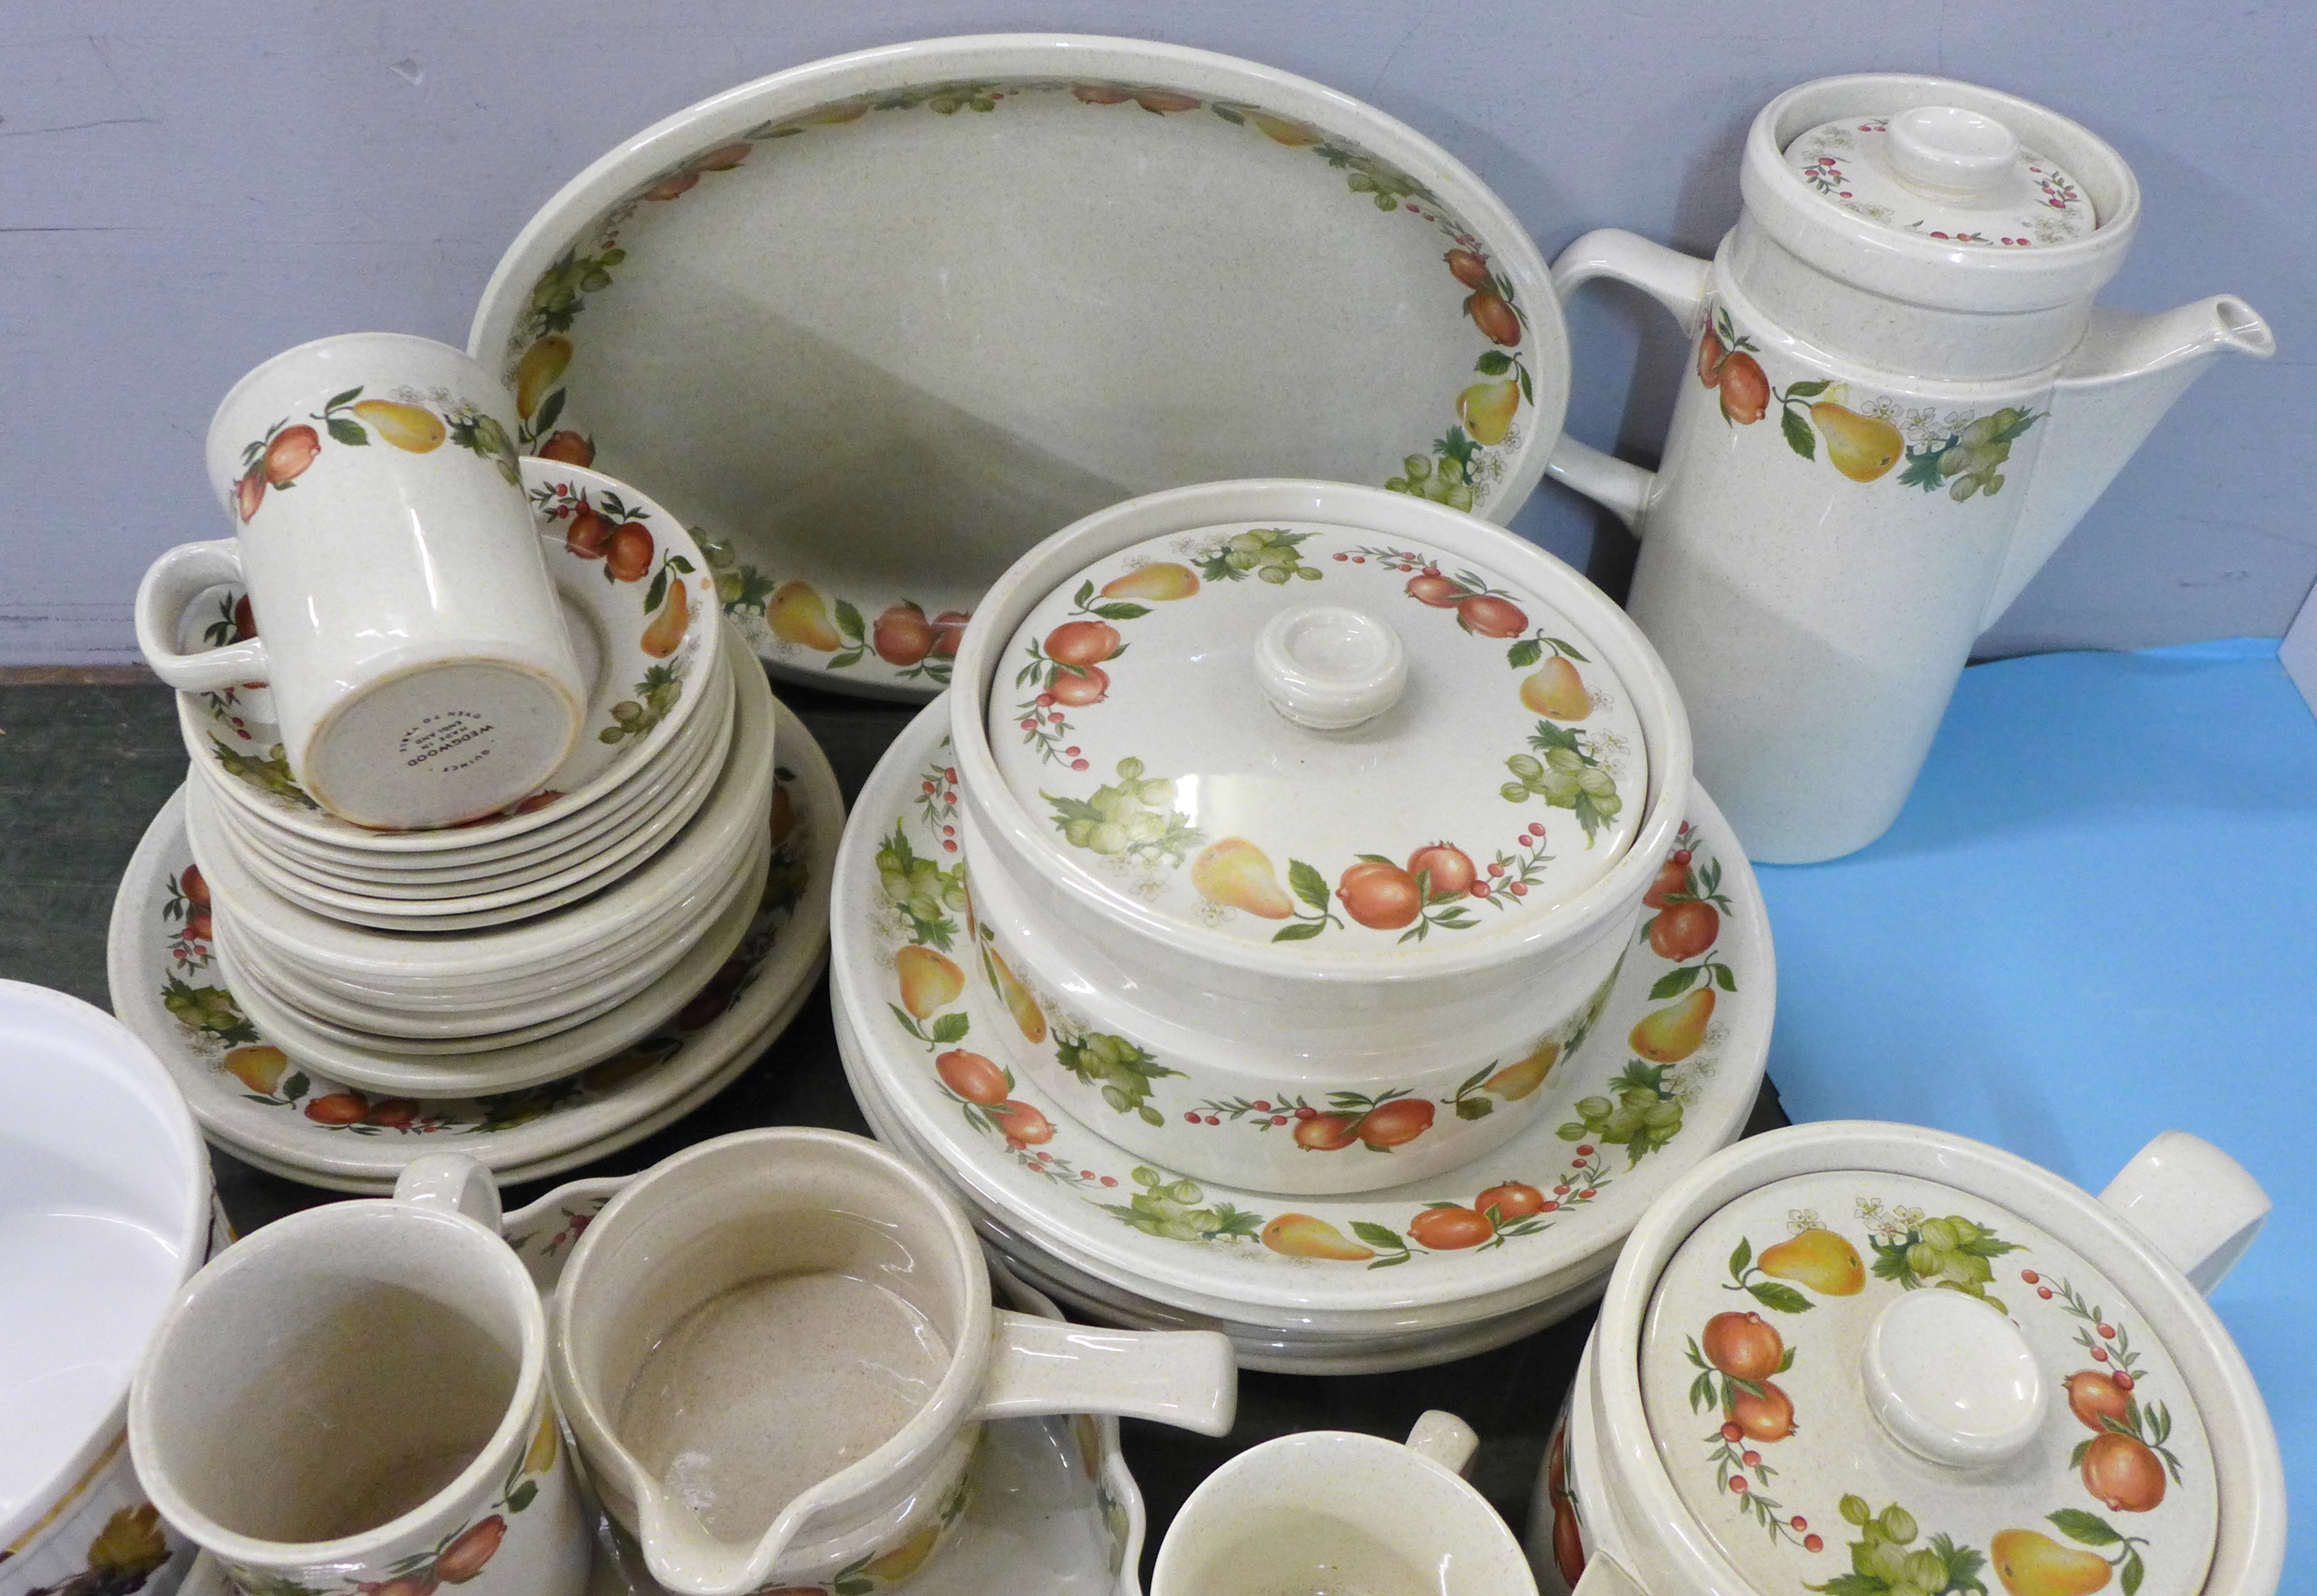 Mixed teawares and tablewares, Wedgwood Quince, Royal Worcester Evesham souffle dish, Denby Autumn - Image 2 of 5